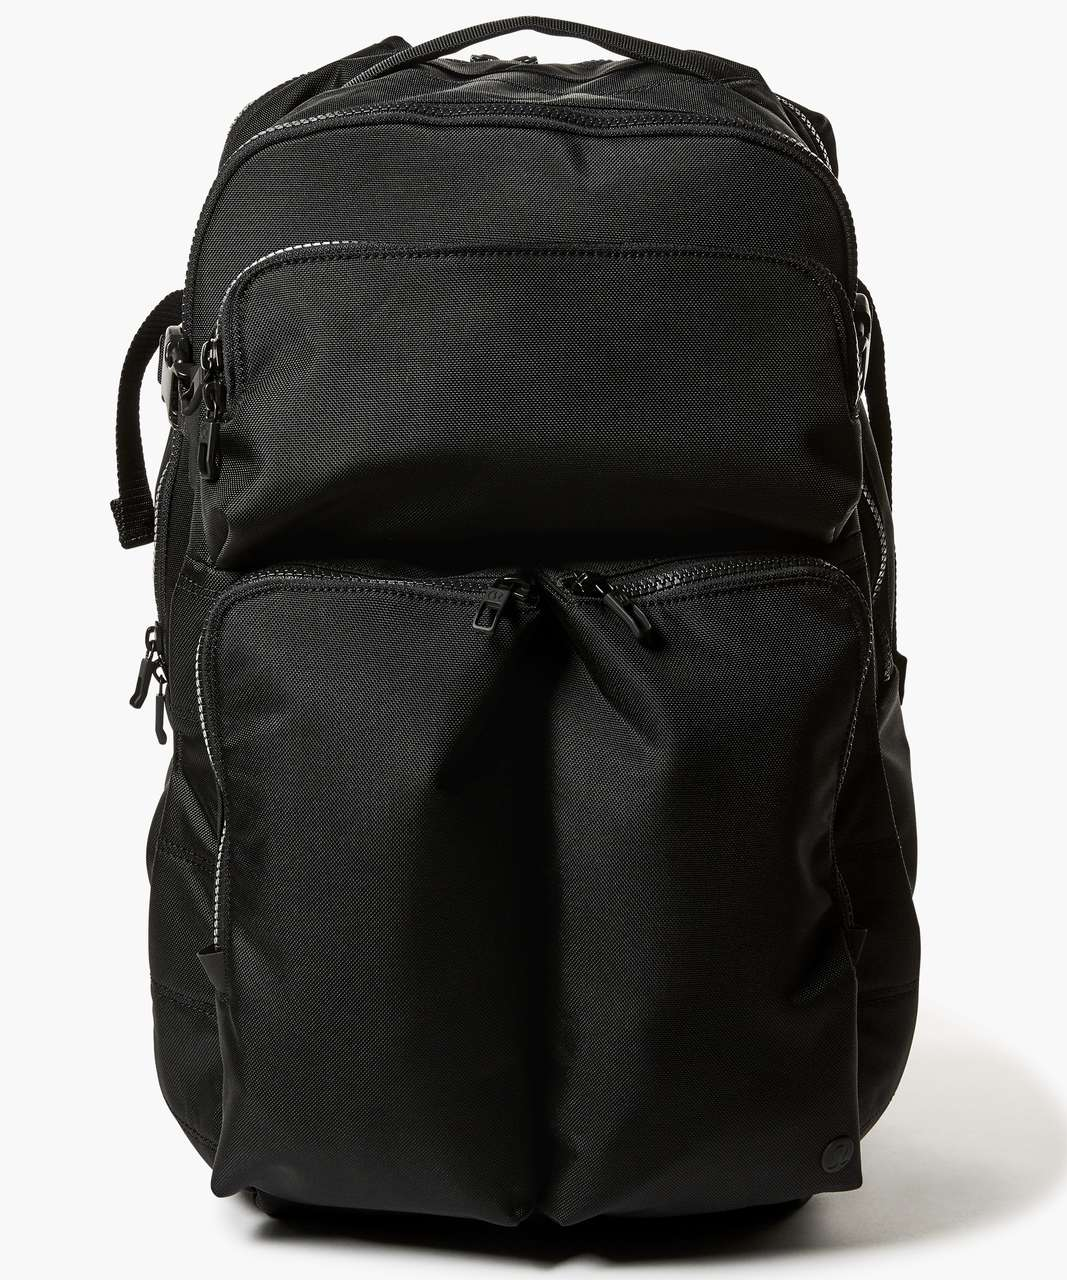 Lululemon Assert Backpack *30L - Black